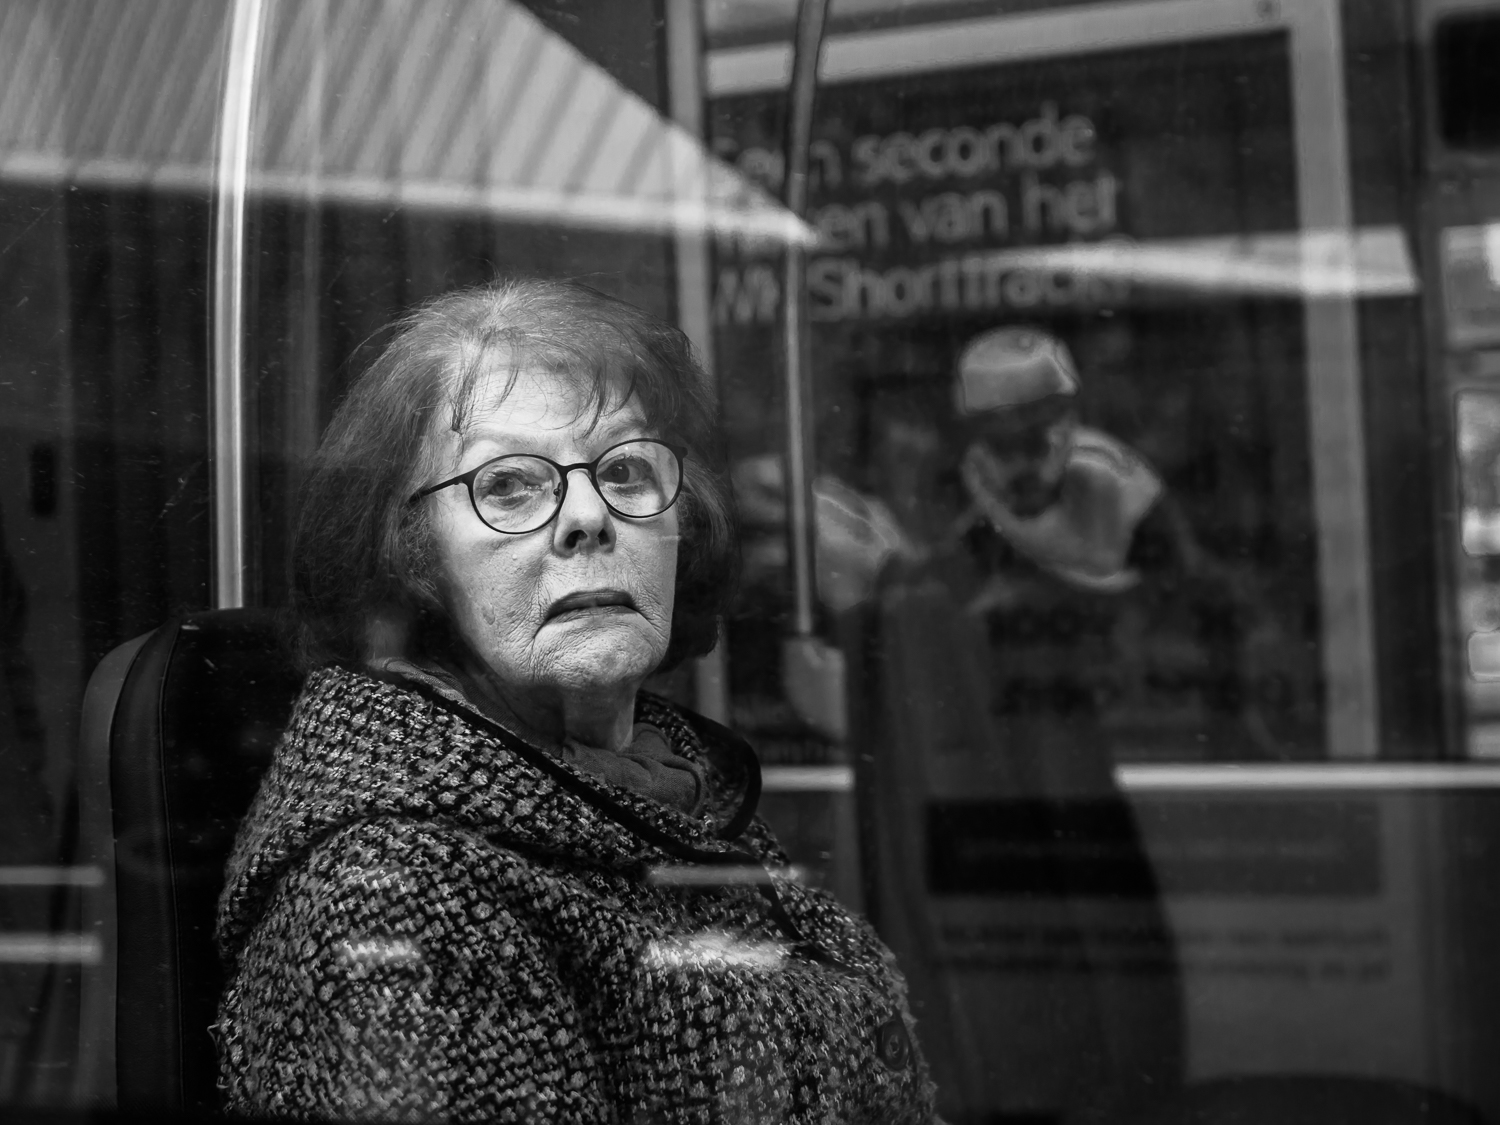 Photo taken in Rotterdam in March 2017. I often make photos of elderly people. I do this intuitively. Their faces show the live they have lived. I also like to see young people but somehow they don't appear very often in my images.  Shot with Olympus OMD1 Mark 2 and Olympus 25mm f/1.2